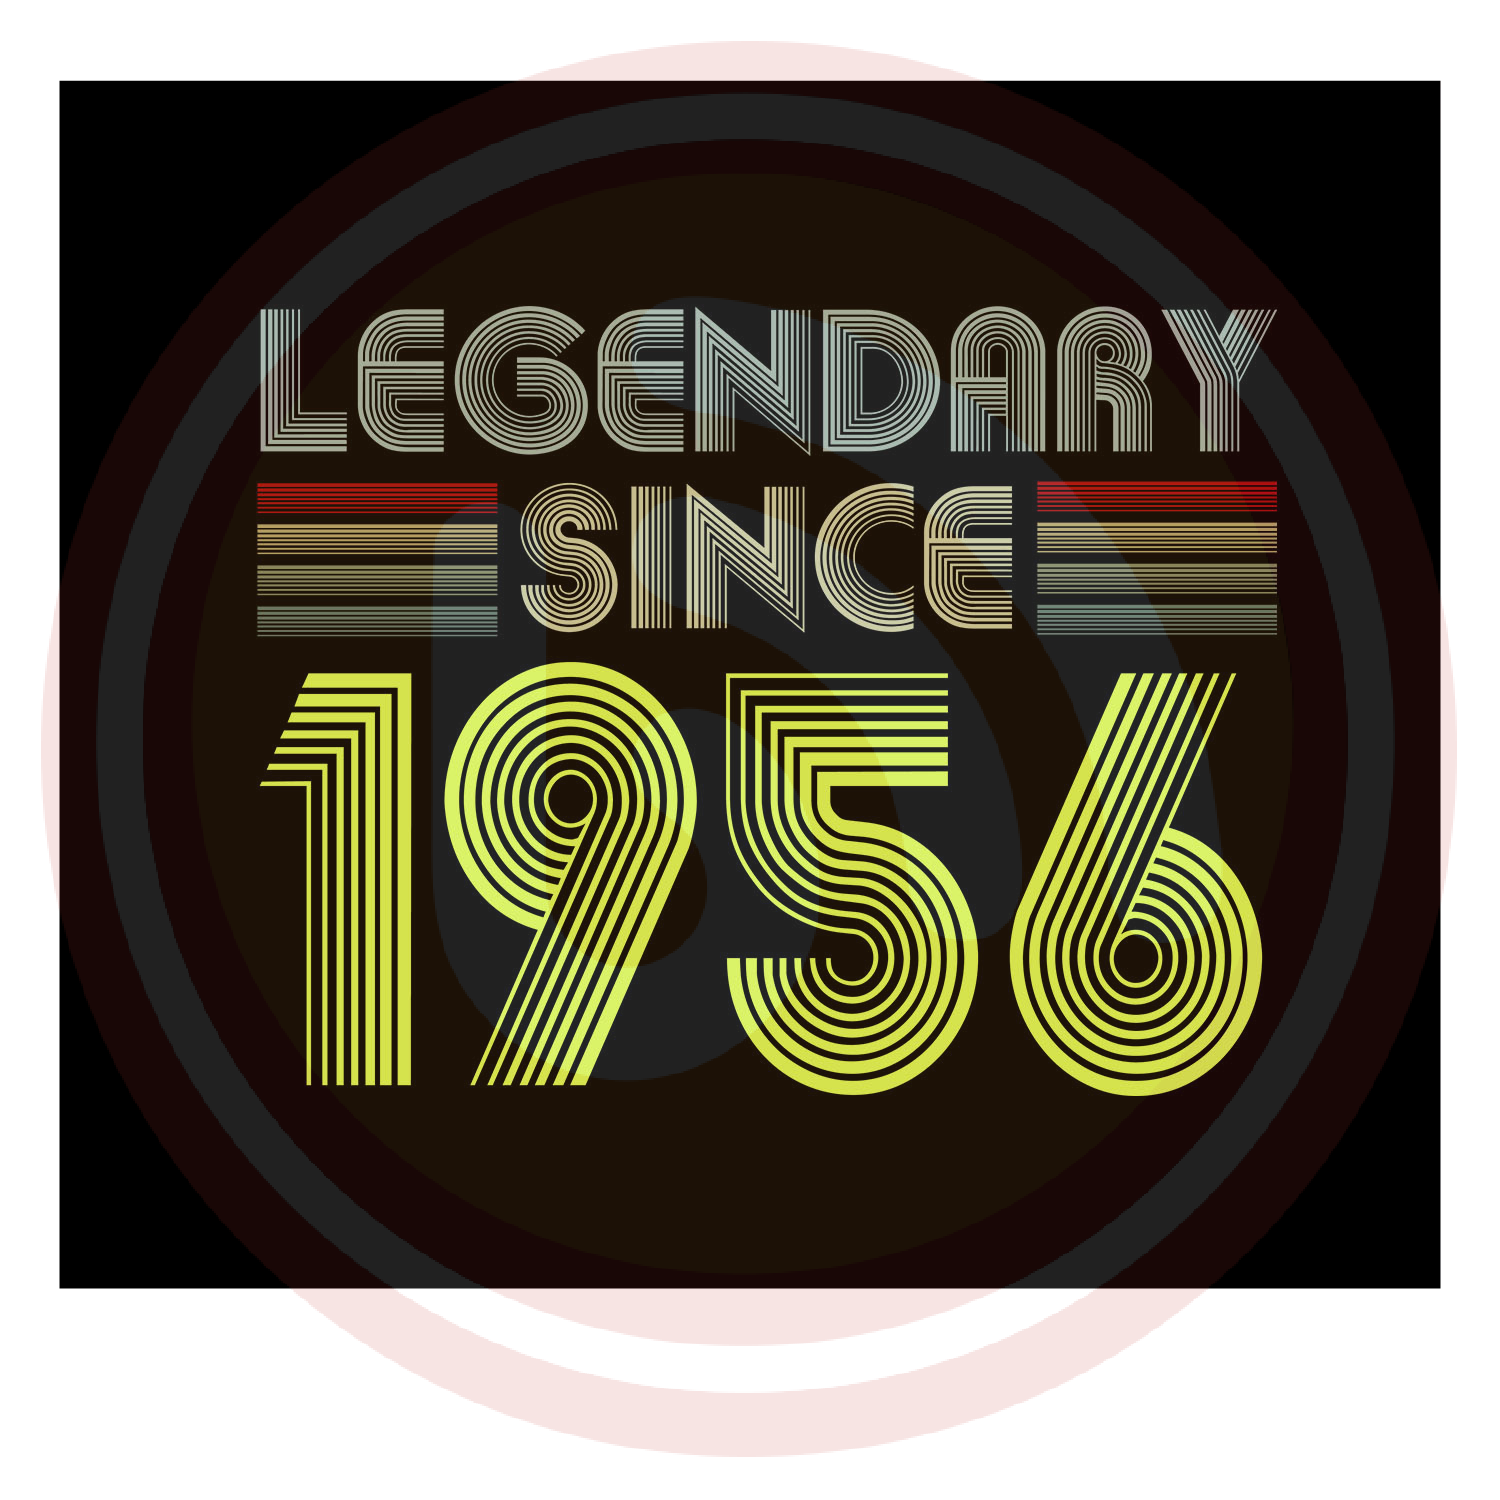 Awesome Since March 1939 Svg Legendary Since 1939 Svg Epic Since 1939 Png Father Gift Svg 82nd Birthday Gift Idea Bday Svg